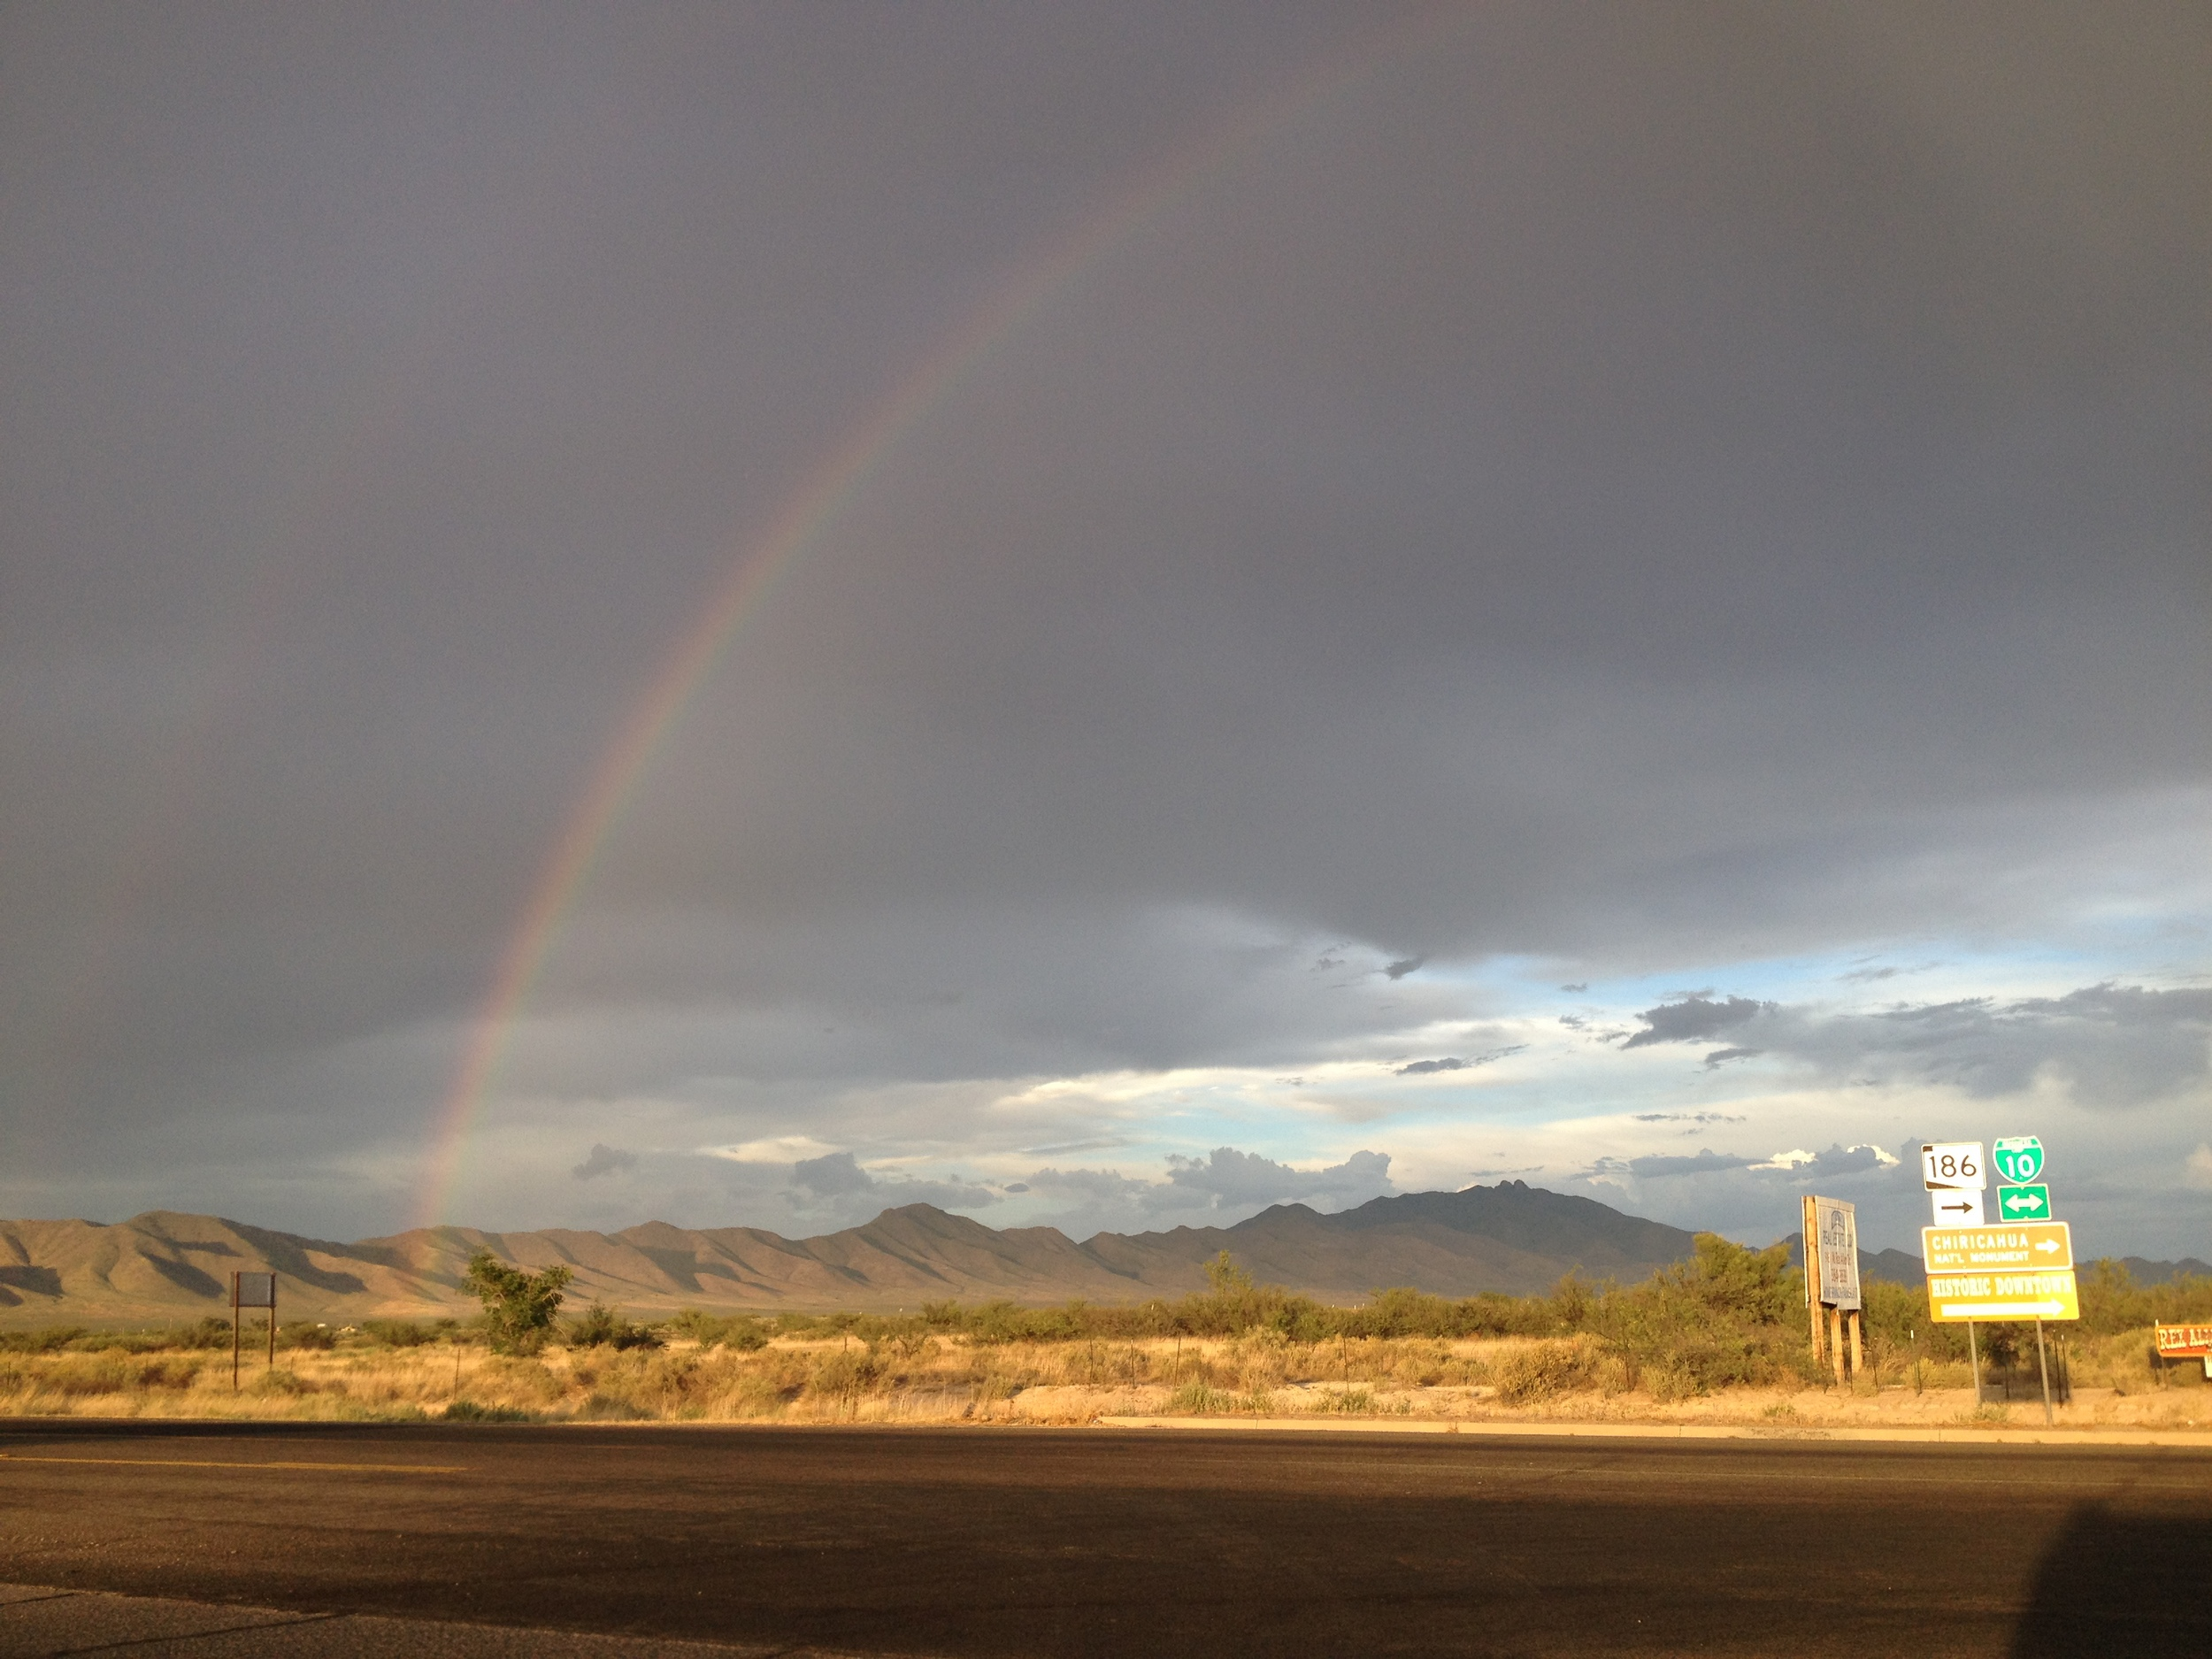 Double rainbow at Willcox, AZ twenty minutes before sunset. Look closely. See that pot of gold?